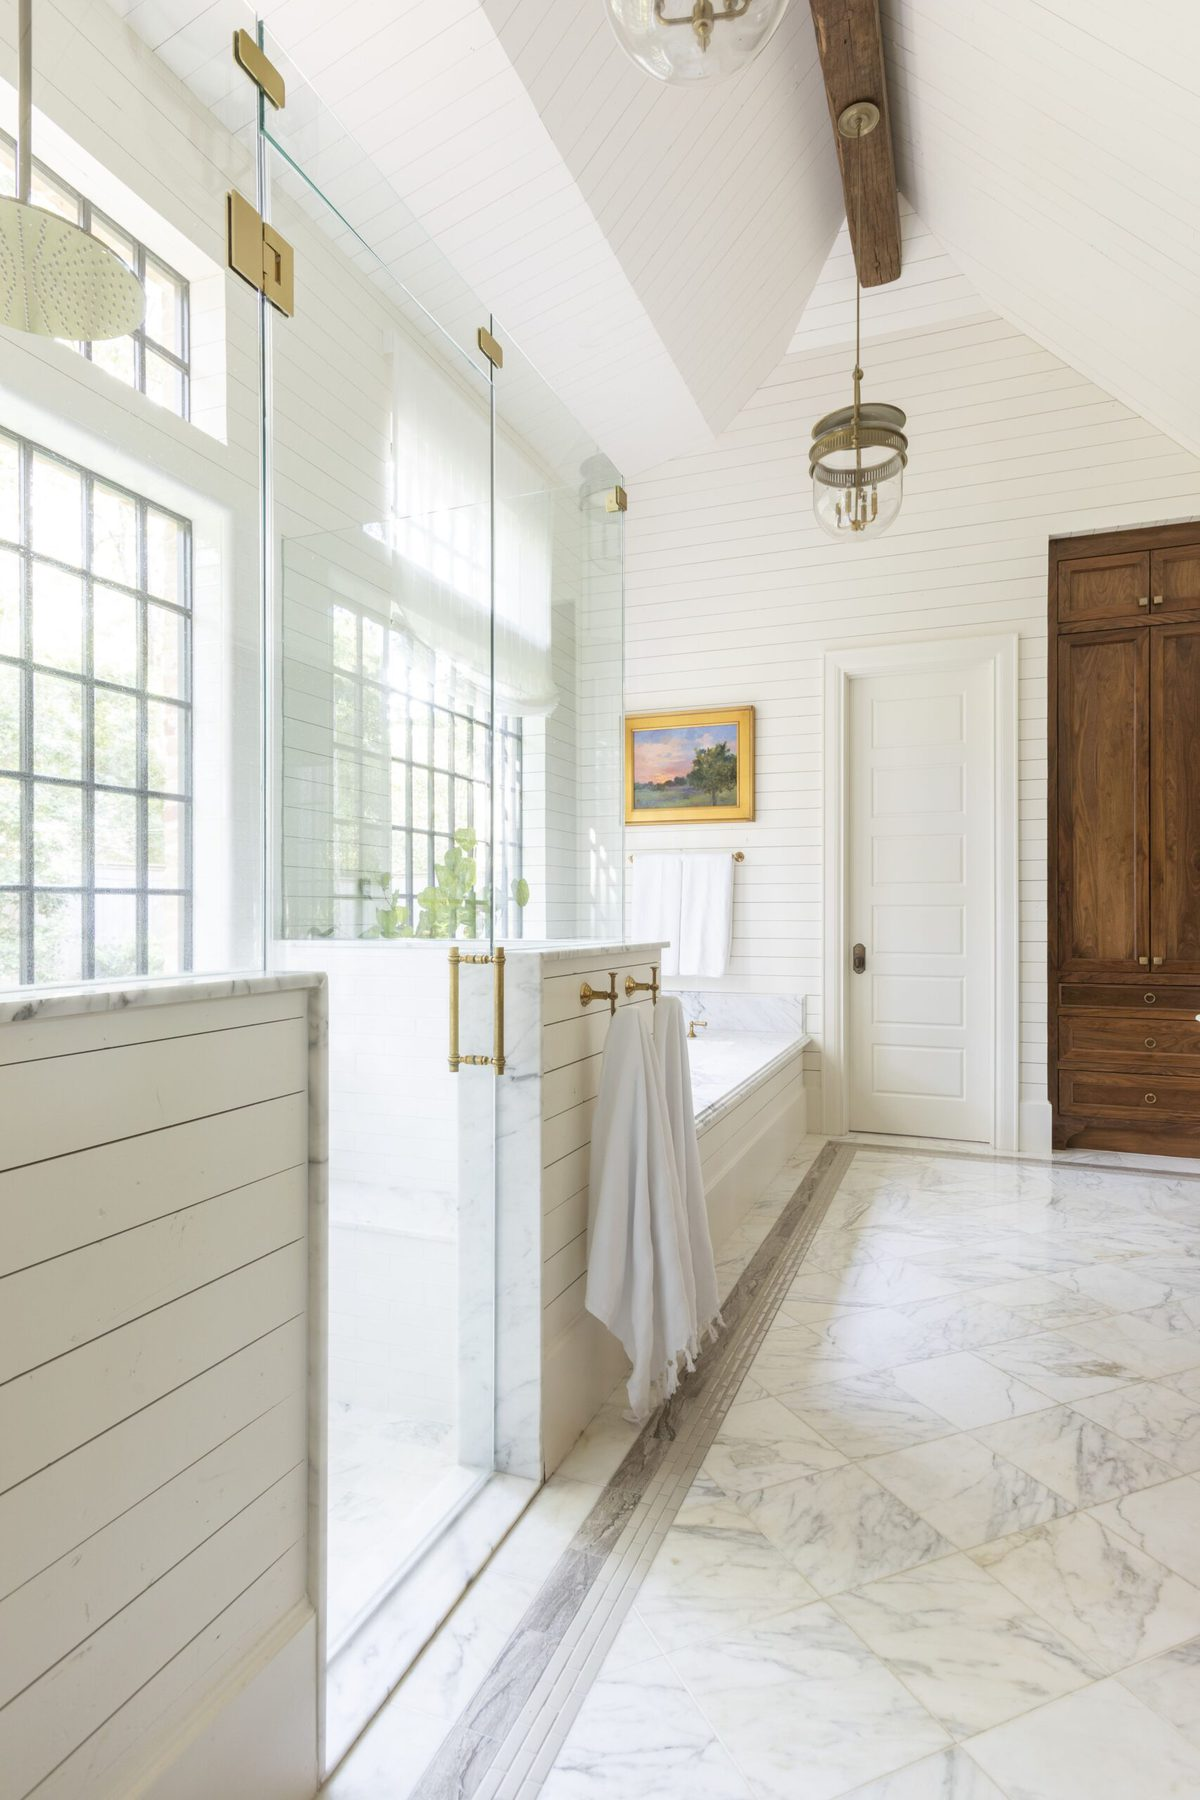 A primary bathroom with cloud white walls and a wooden door